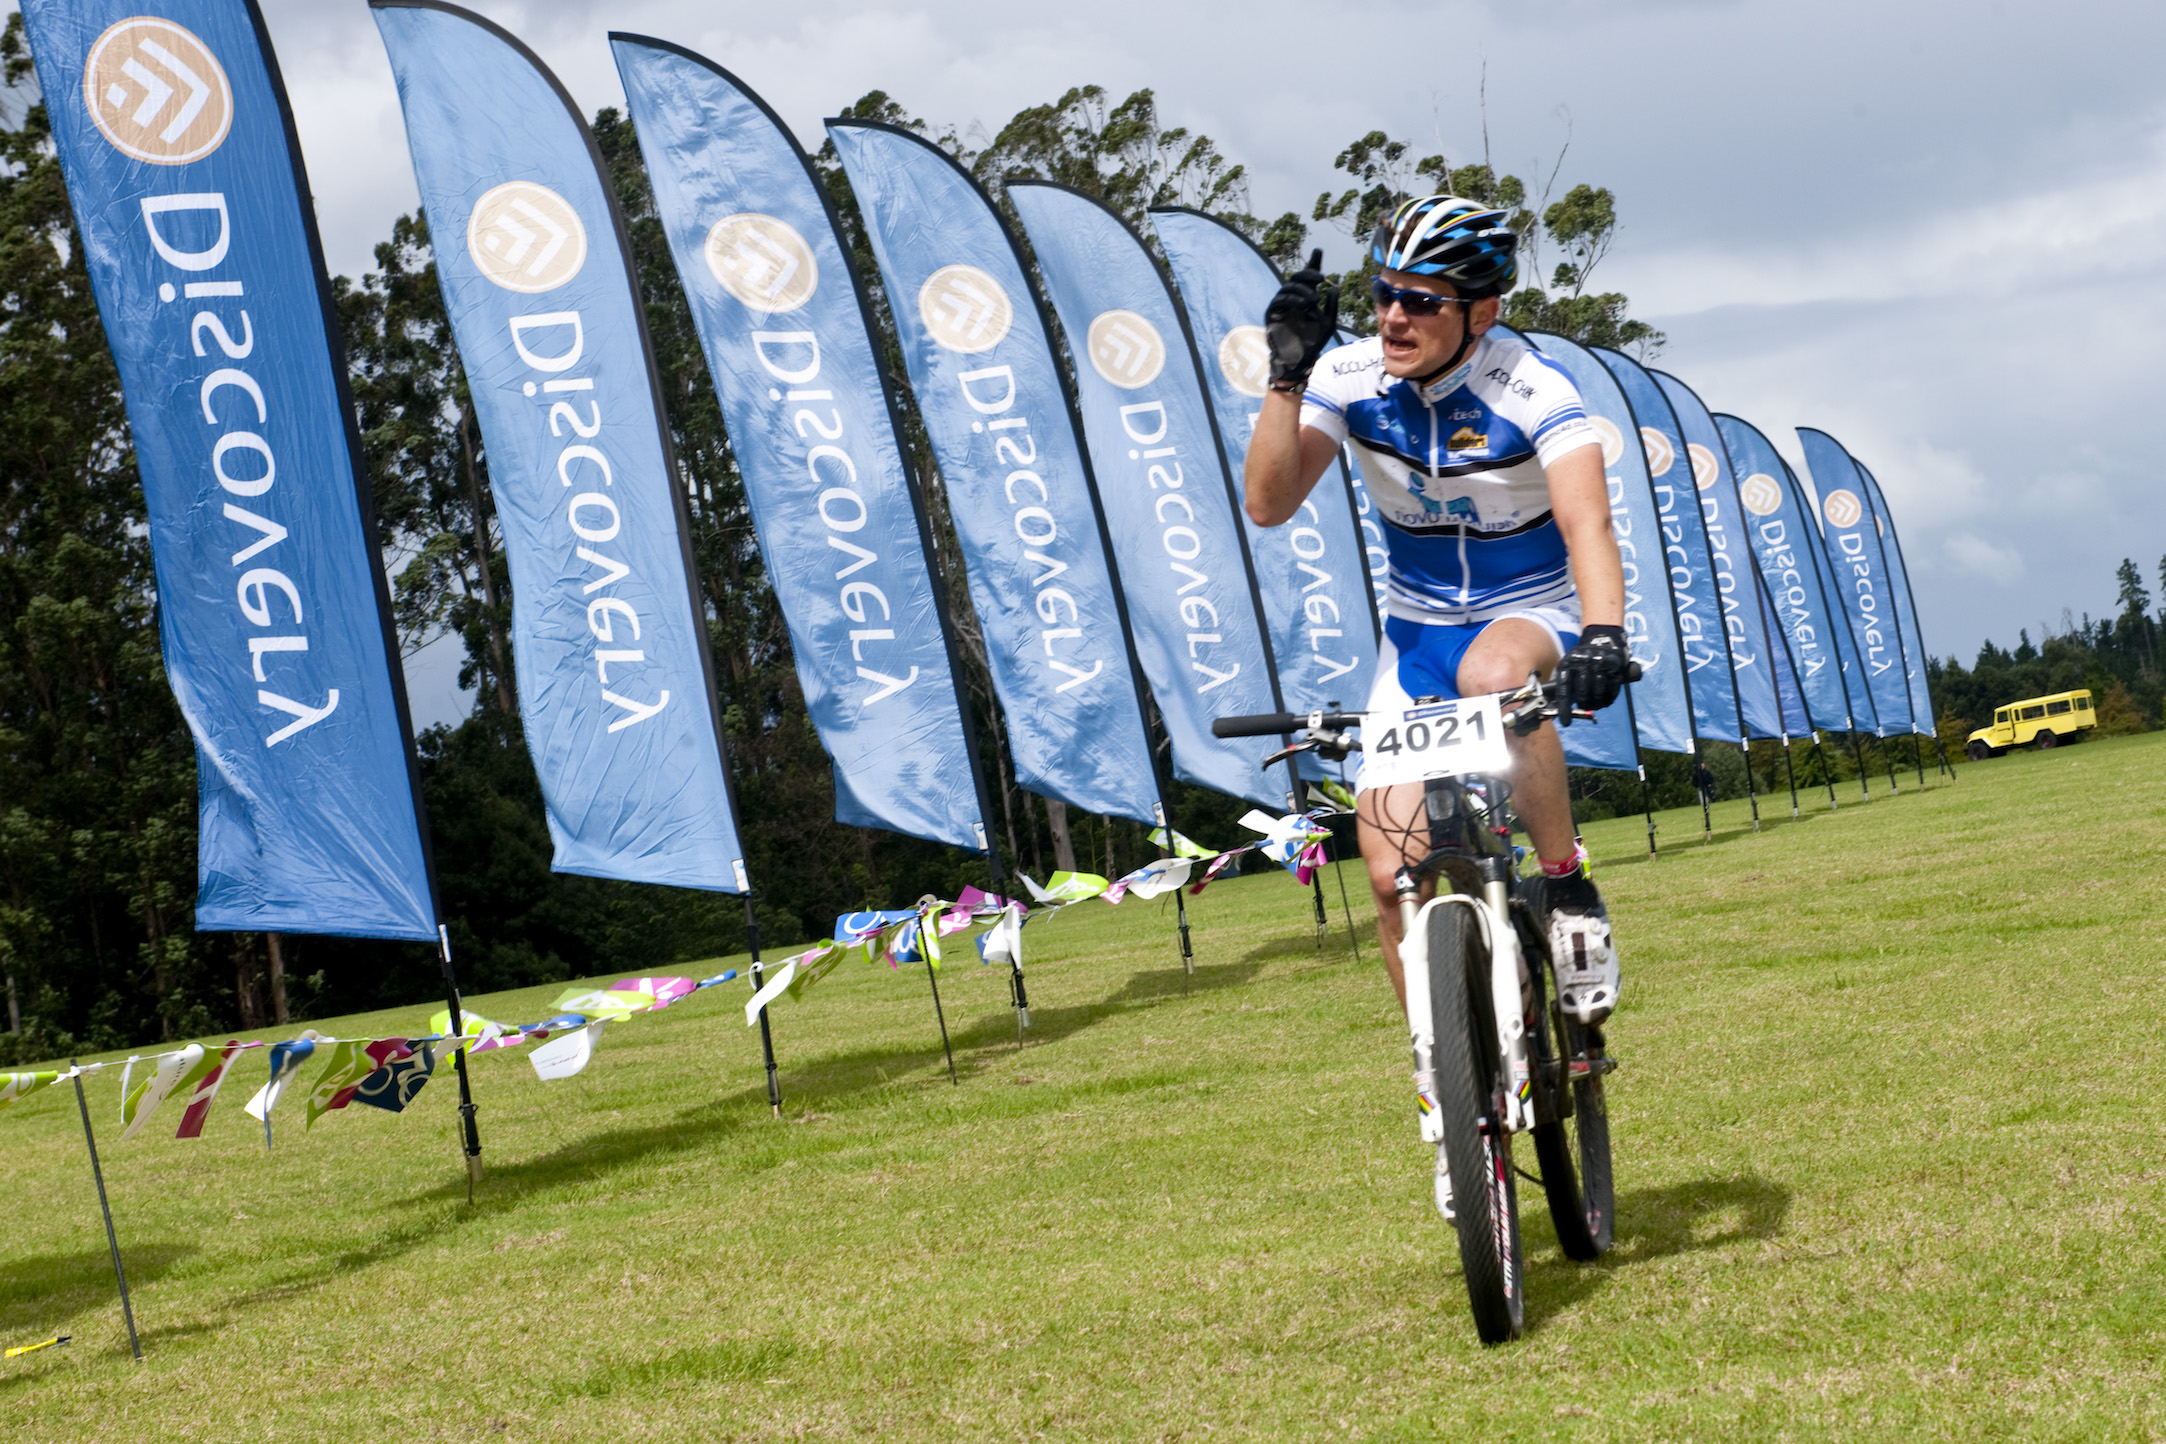 DISCOVERY PLETT EASTER GAMES MTB CHALLENGE 2014/2013